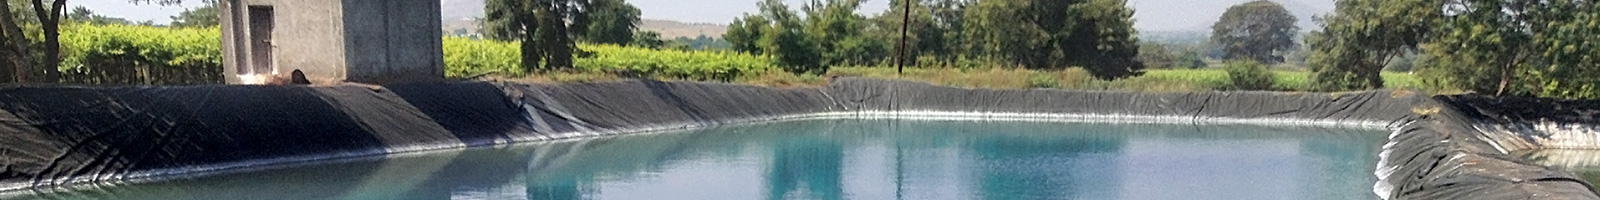 pondliner-featured